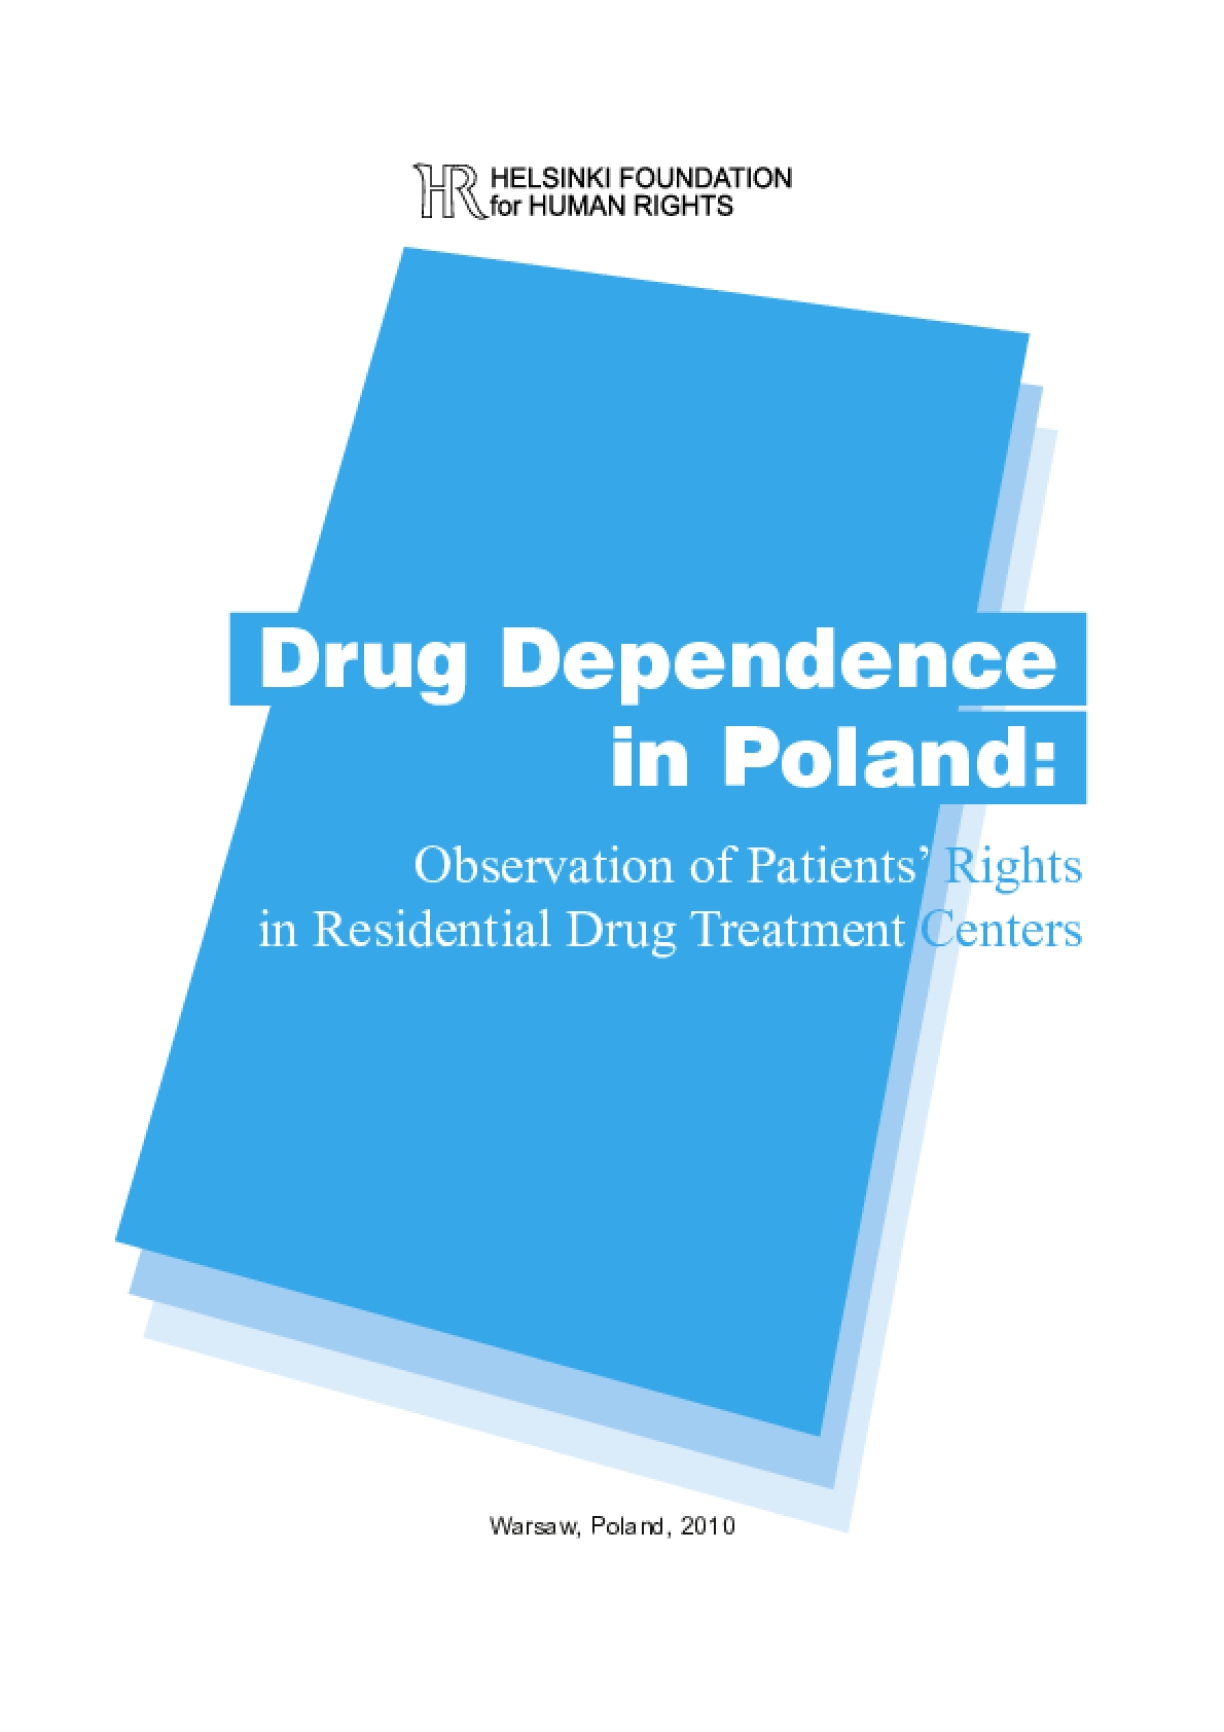 Drug Dependence in Poland: Observation of Patients' Rights in Residential Drug Treatment Centers